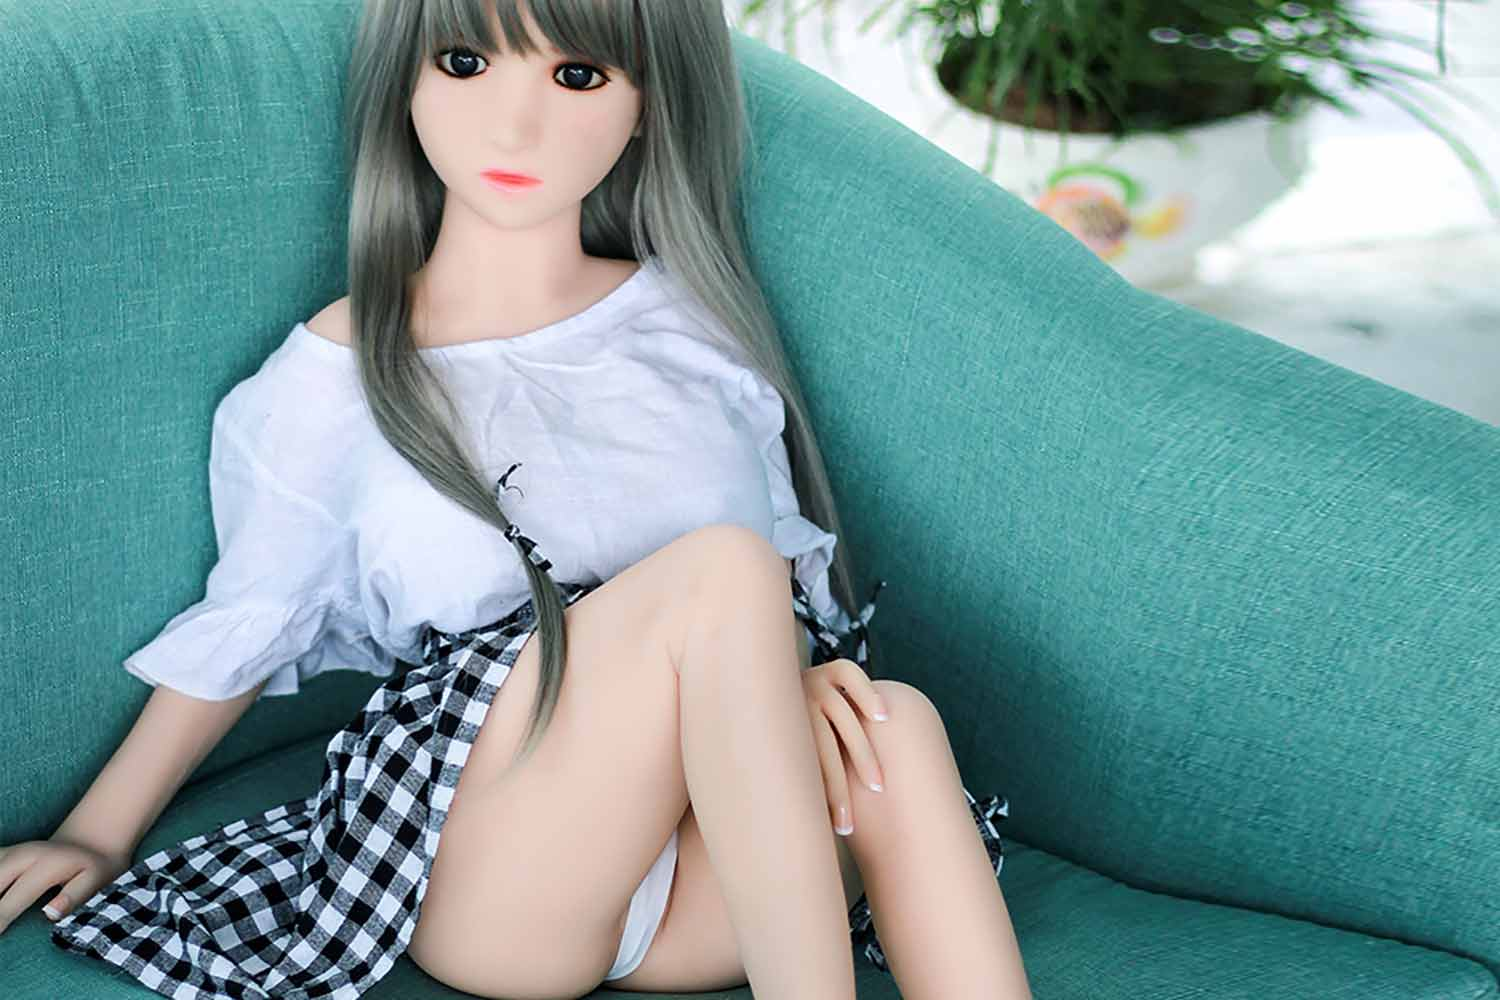 Mini sex doll with legs and hands